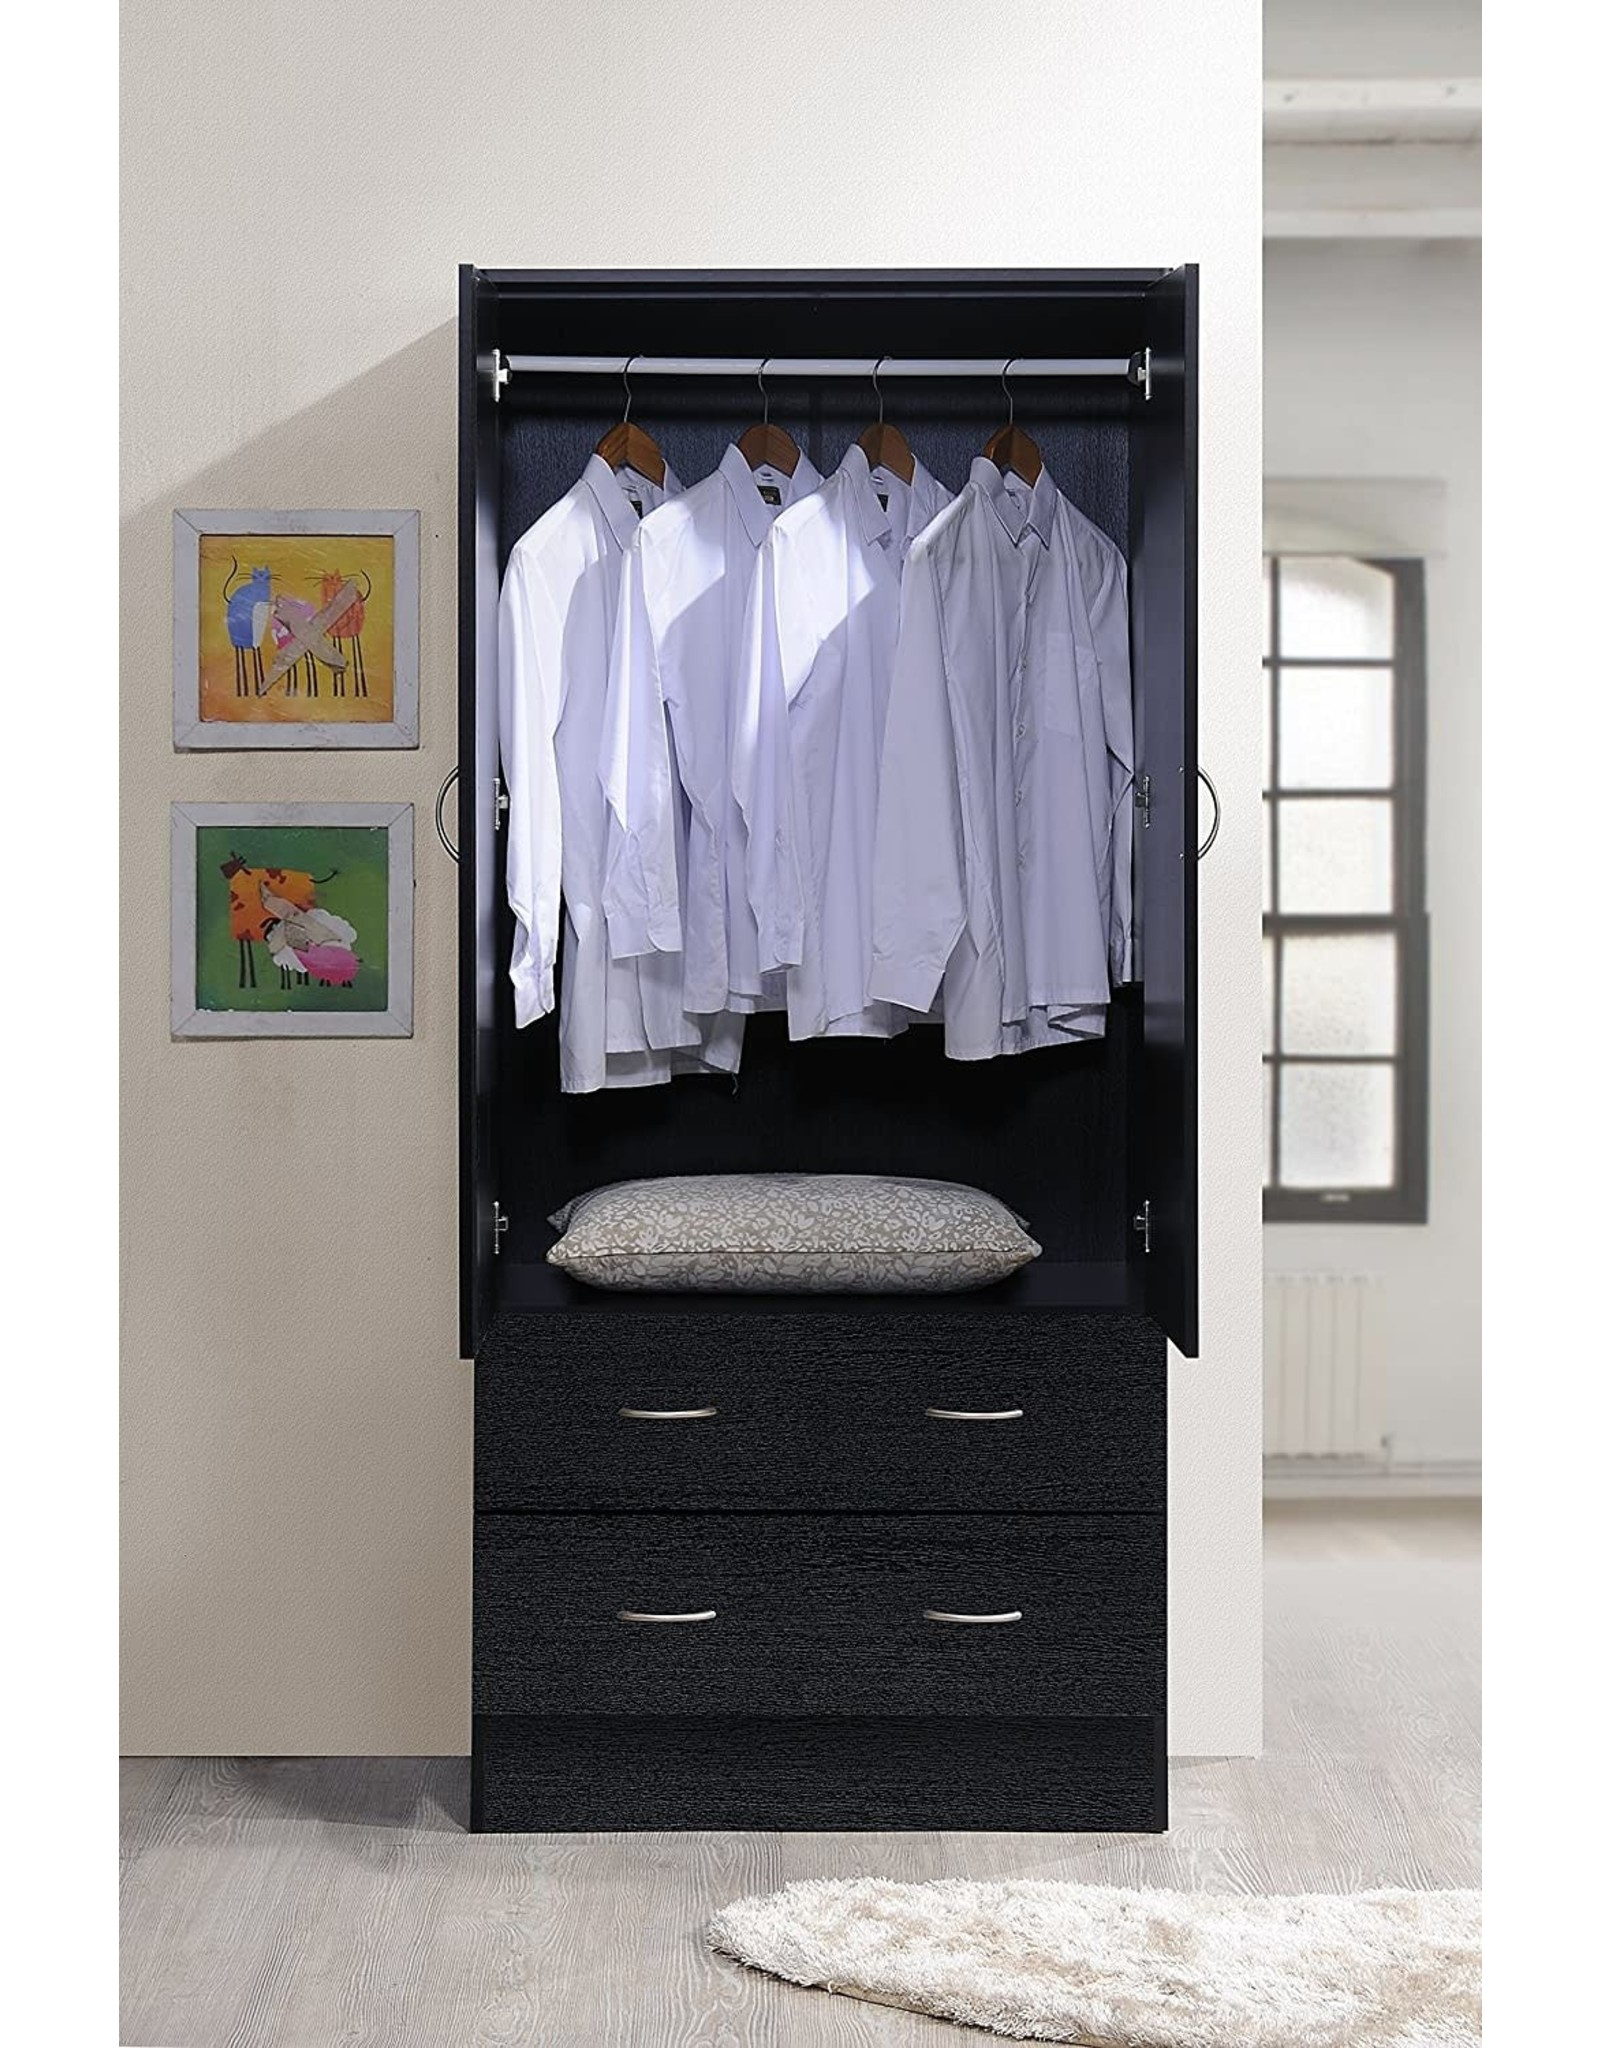 Hodedah Hodedah Two Door Wardrobe, with Two Drawers, and Hanging Rod, Black